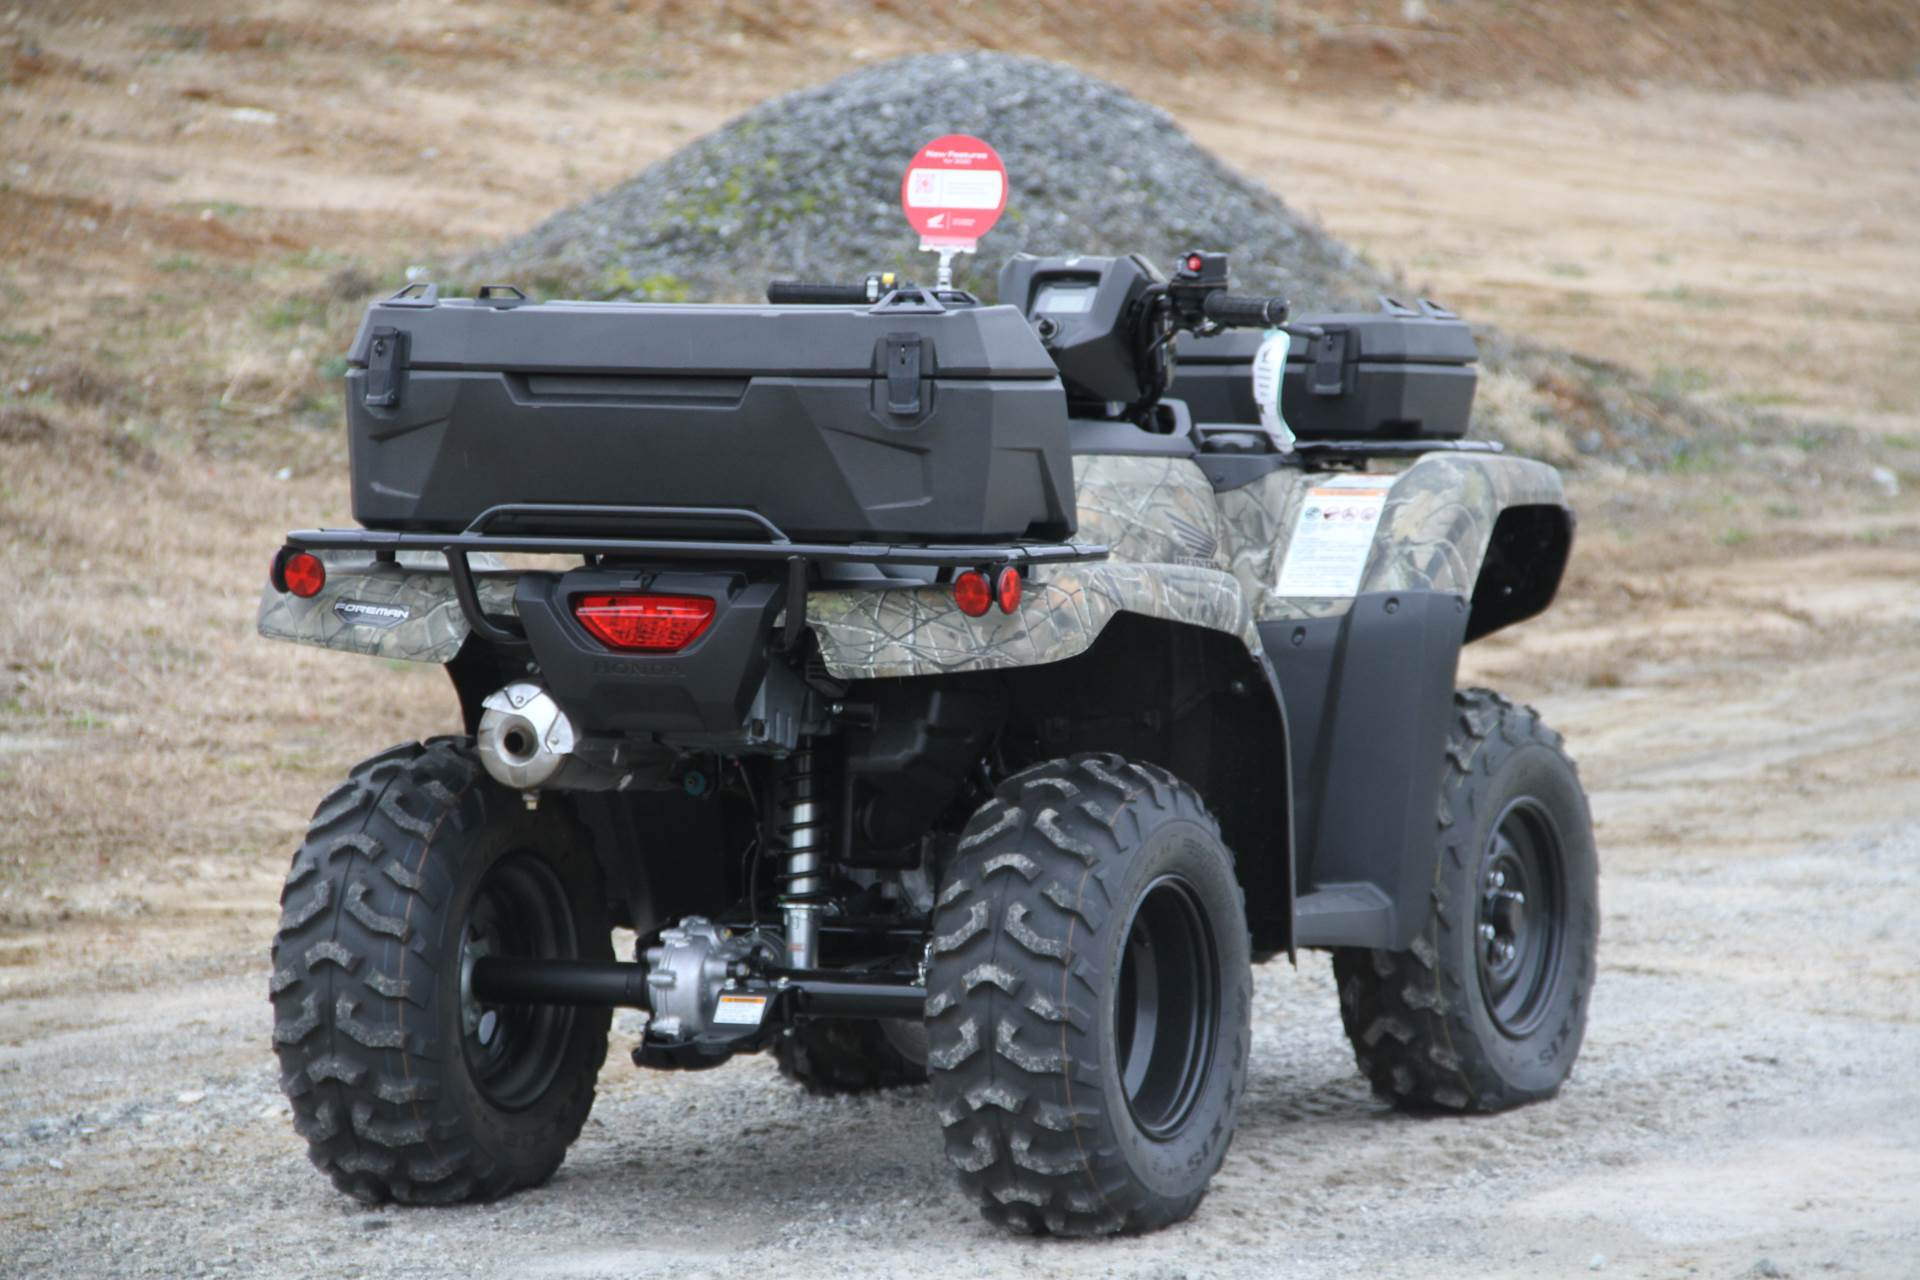 2020 Honda FourTrax Rancher 4x4 in Hendersonville, North Carolina - Photo 13